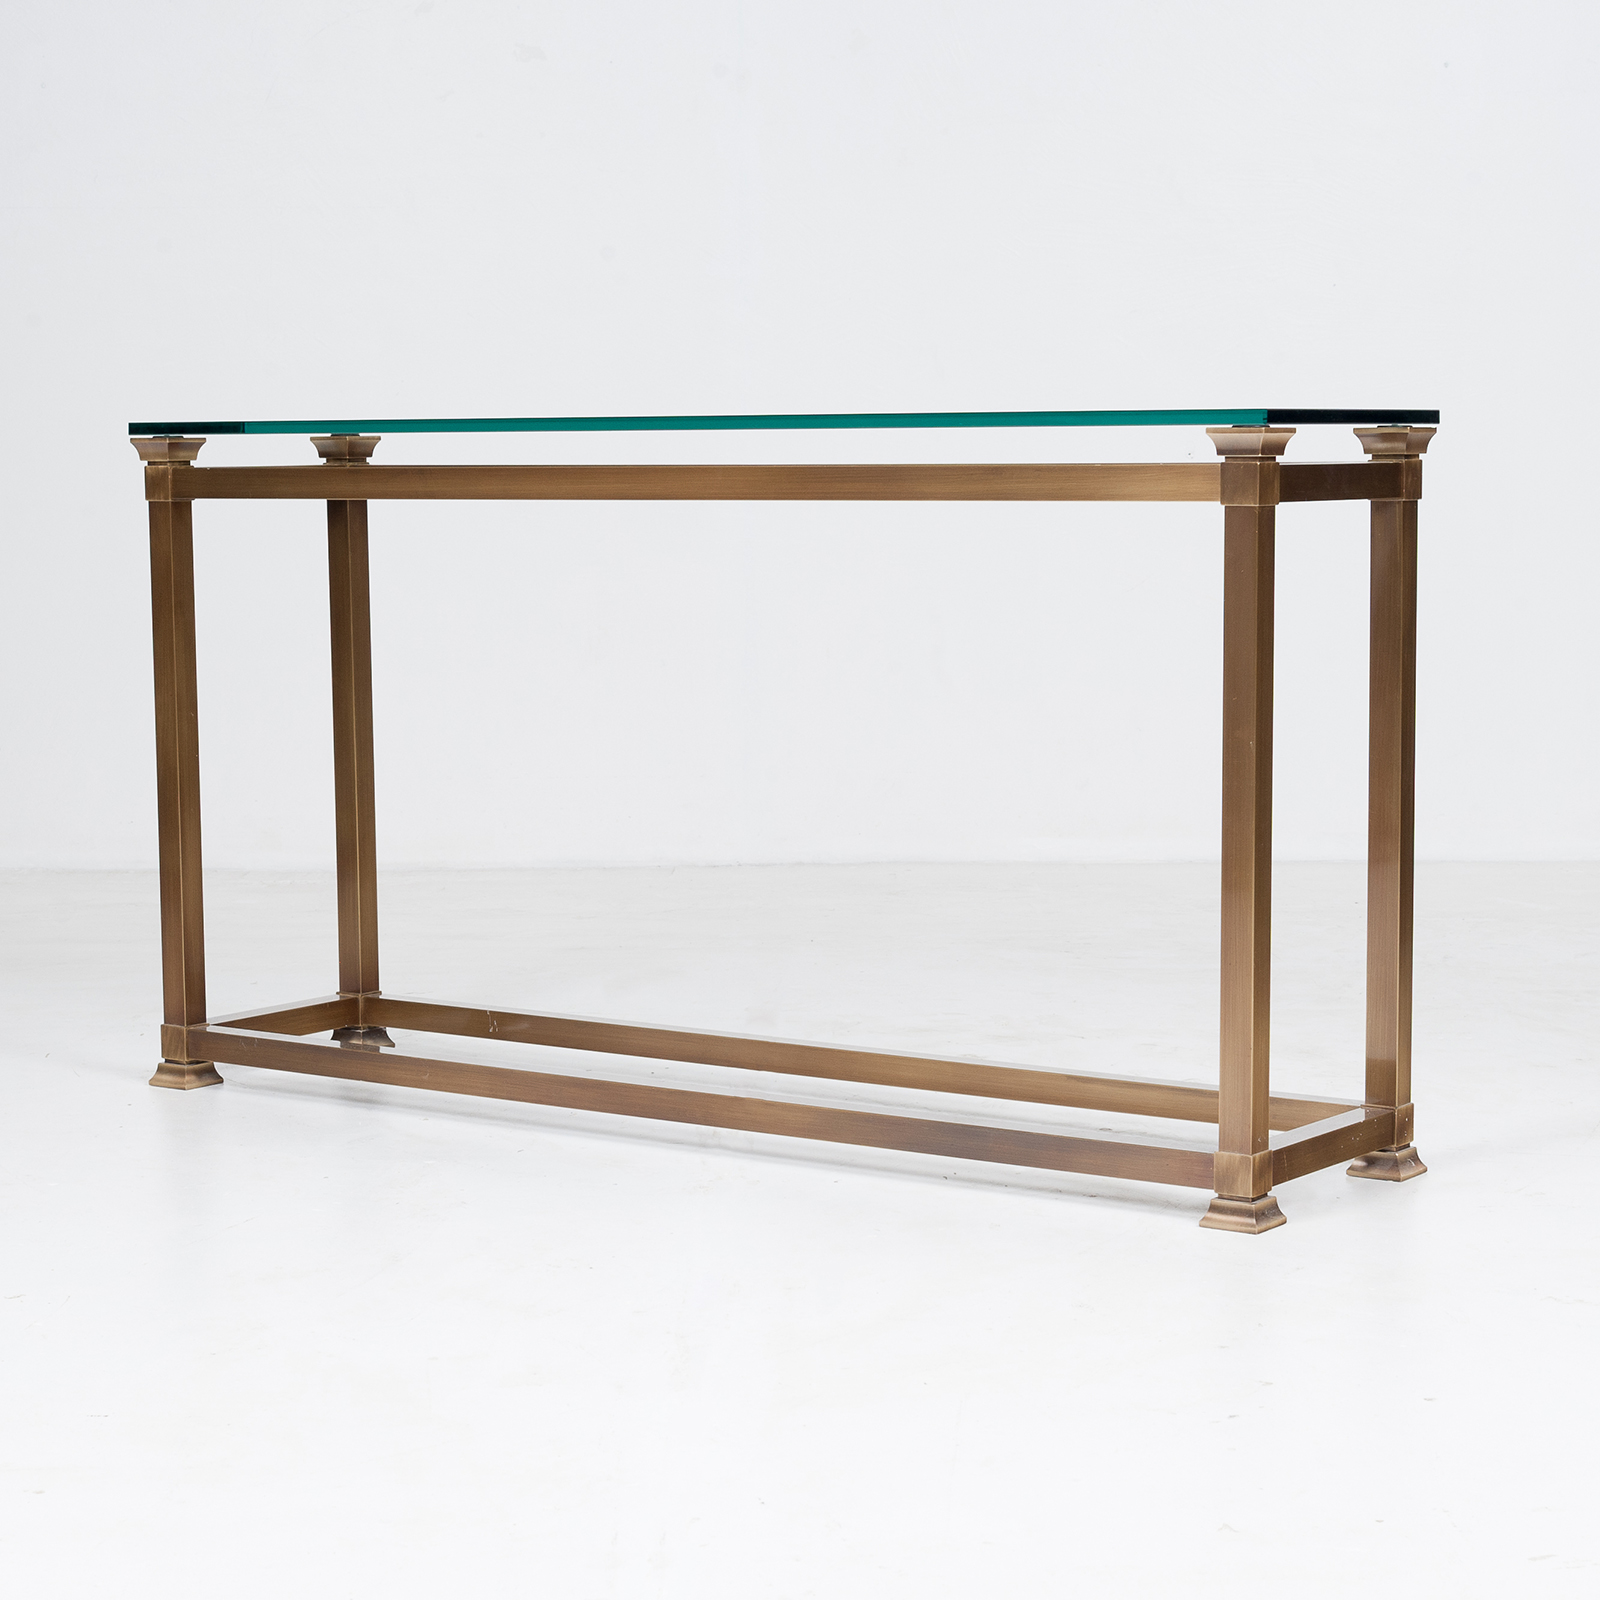 Wall Console In Brass, 1960s, The Netherlands4